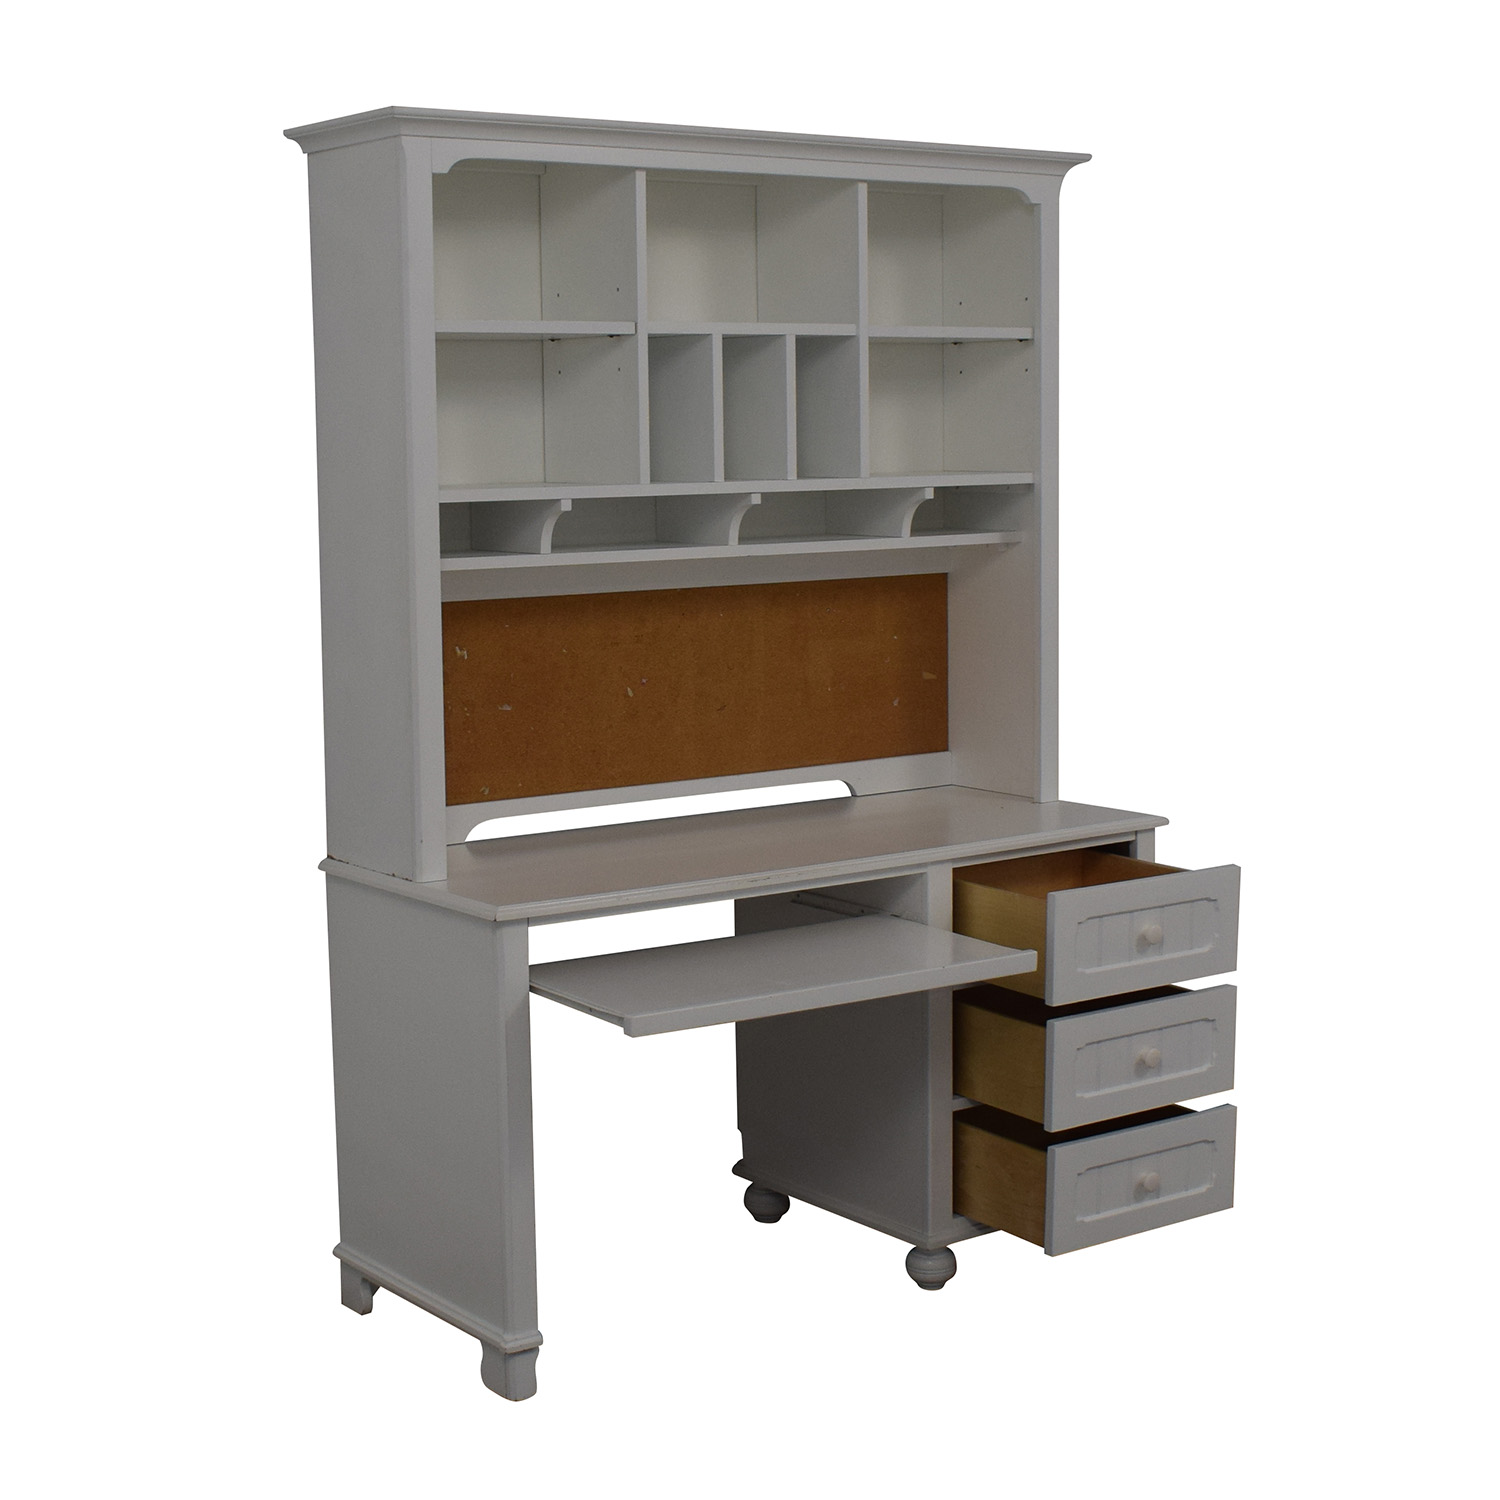 Lea Furniture Lea Furniture Modern Computer Desk and Hutch coupon